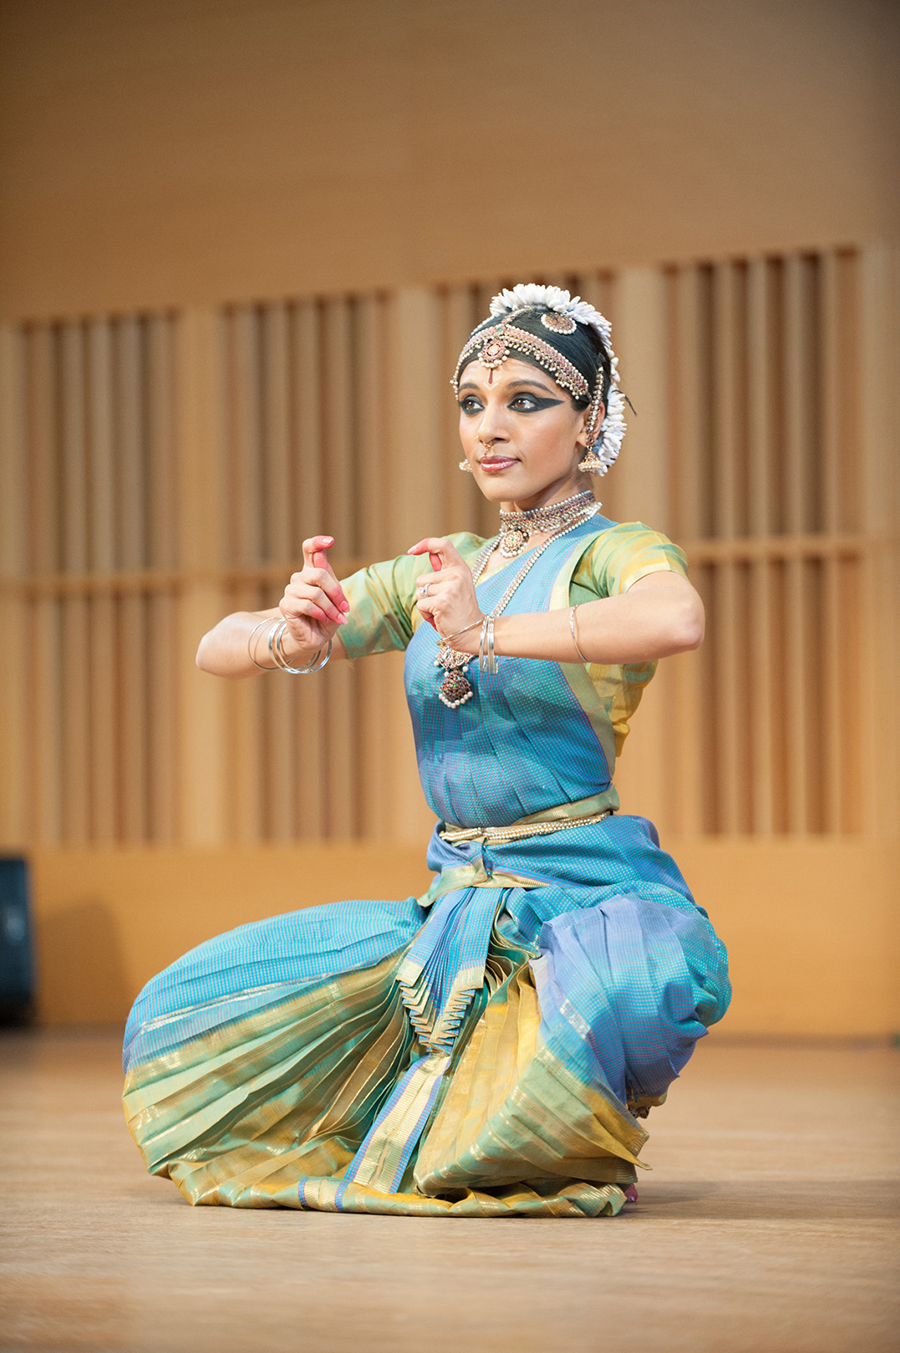 National Dance Project grant recipient Aparna Ramaswamy, Wesleyan University. Photo by Ed Rudman.